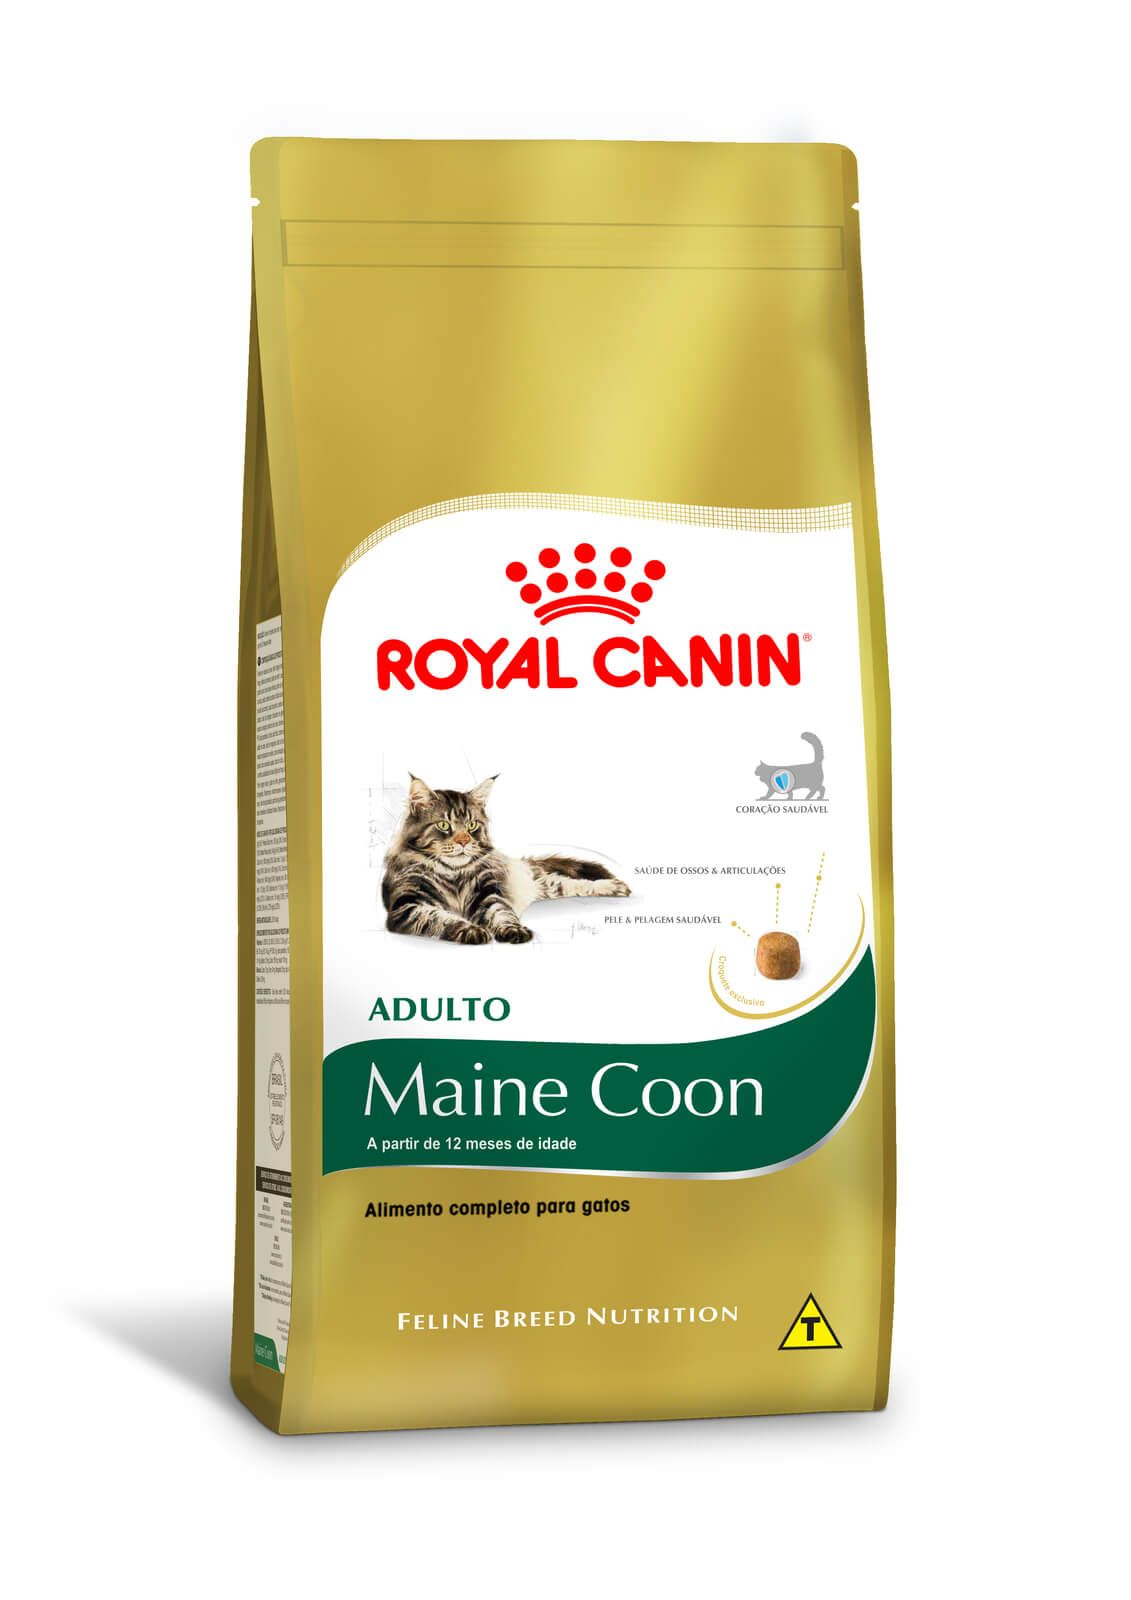 Ração Royal Canin Maine Coon Adulto - 4 kg